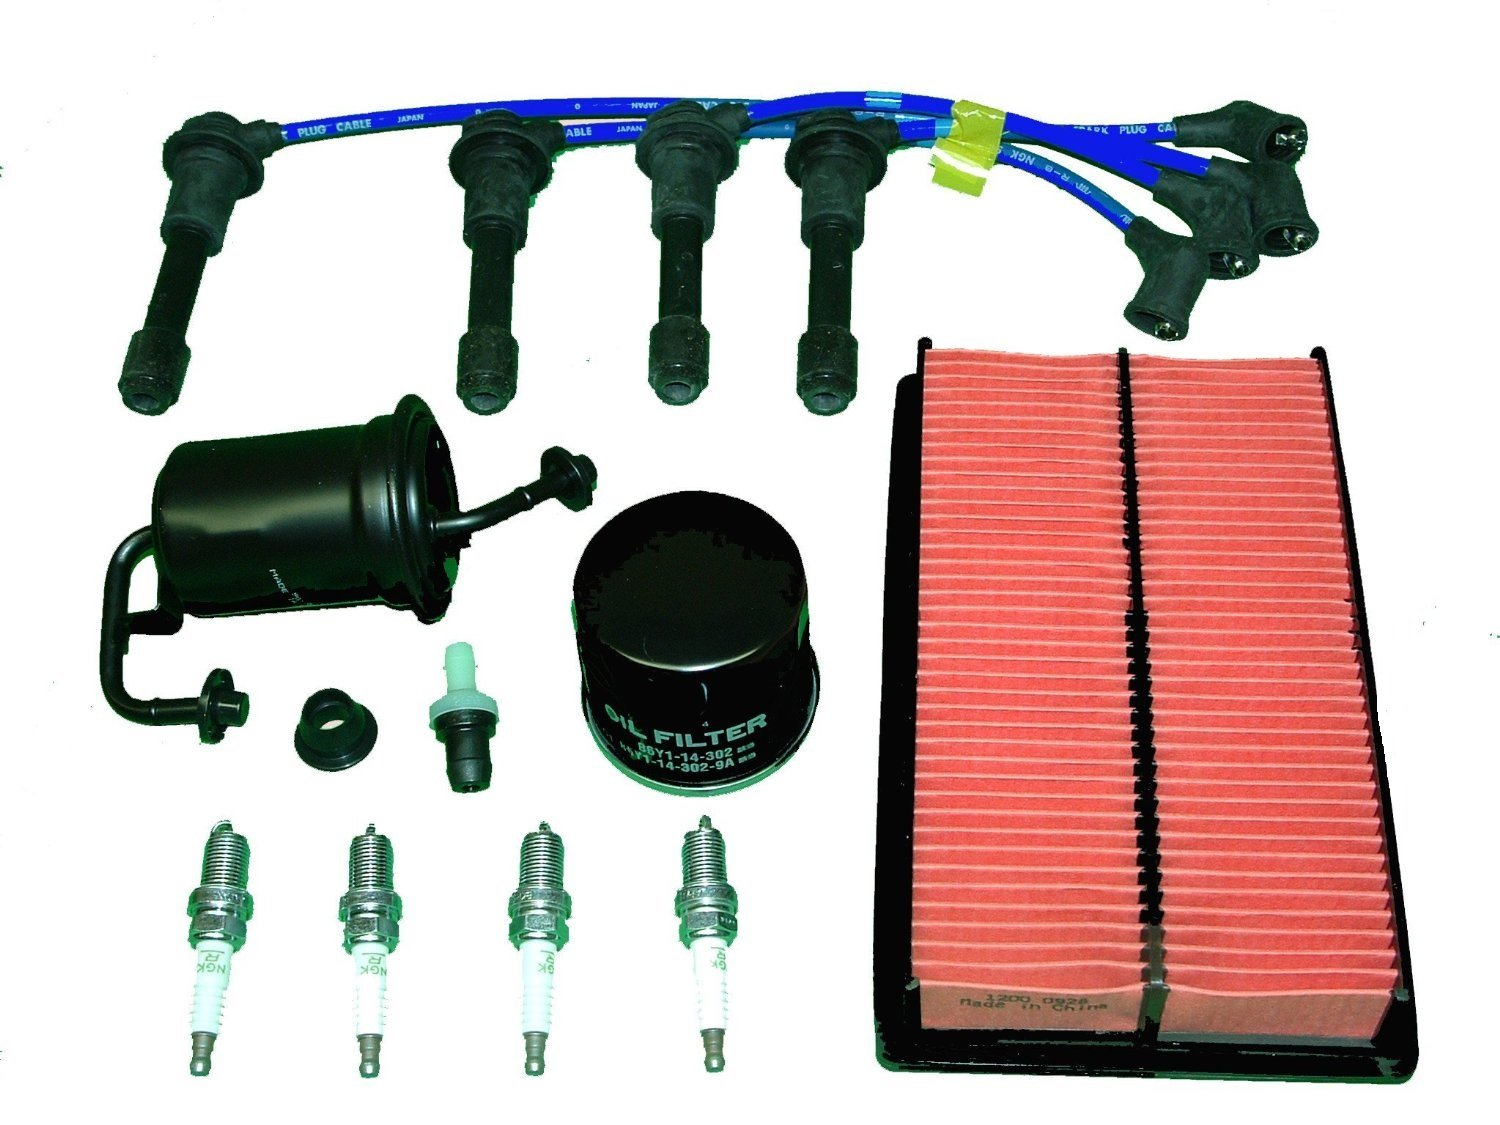 TBK Tune Up Kit Mazda Miata MX5 1994 to 1997 Includes Air Filter Oil Filter Fuel Filter PCV Valve and Grommet NGK Brand Spark Plugs and NGK Brand Ignition Wires